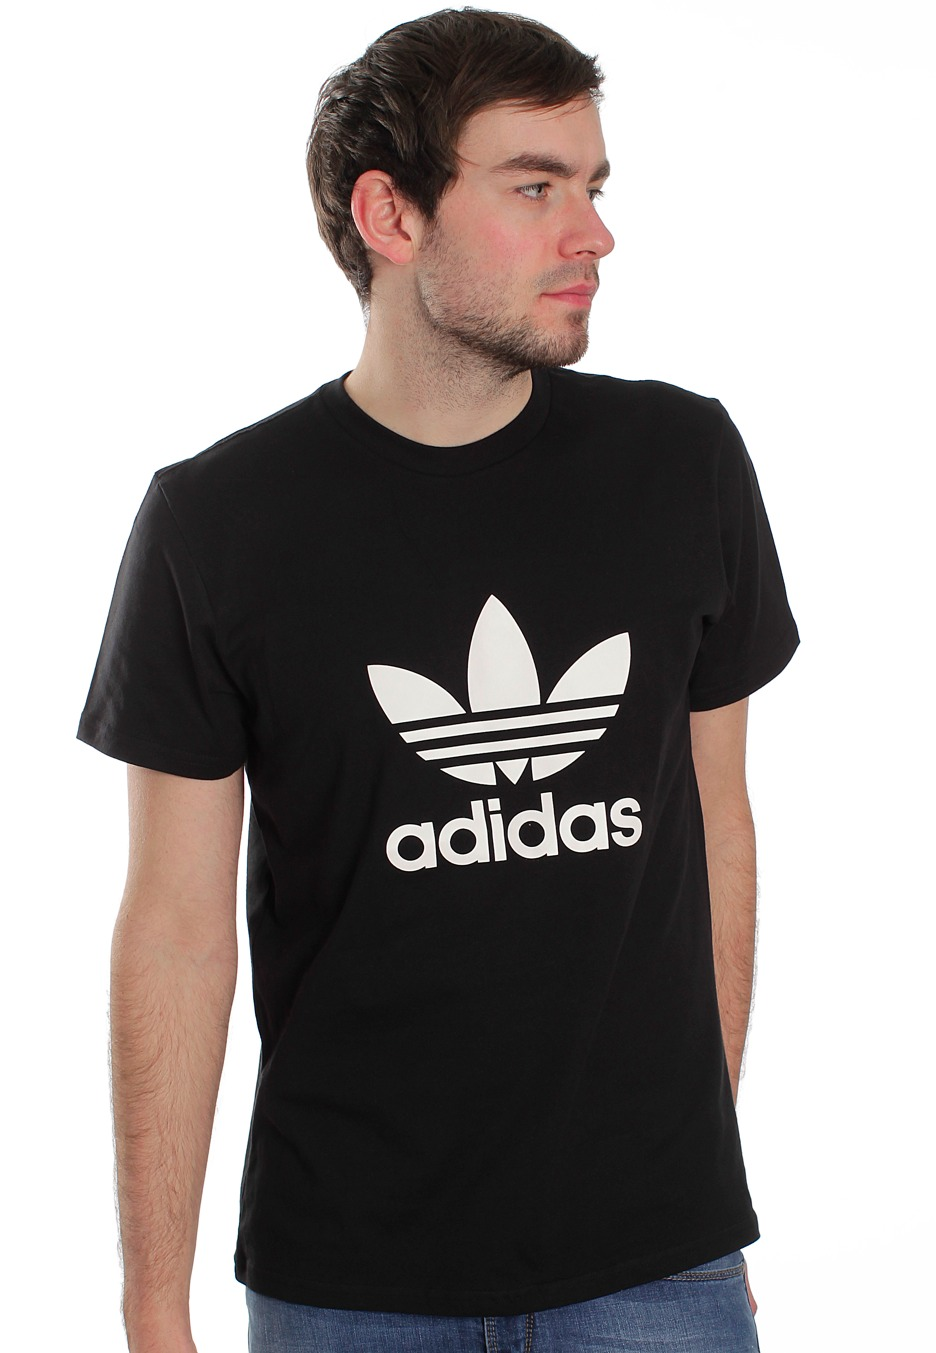 Adidas t shirt black white - Adidas Trefoil Black White T Shirt Streetwear Shop Impericon Com Worldwide